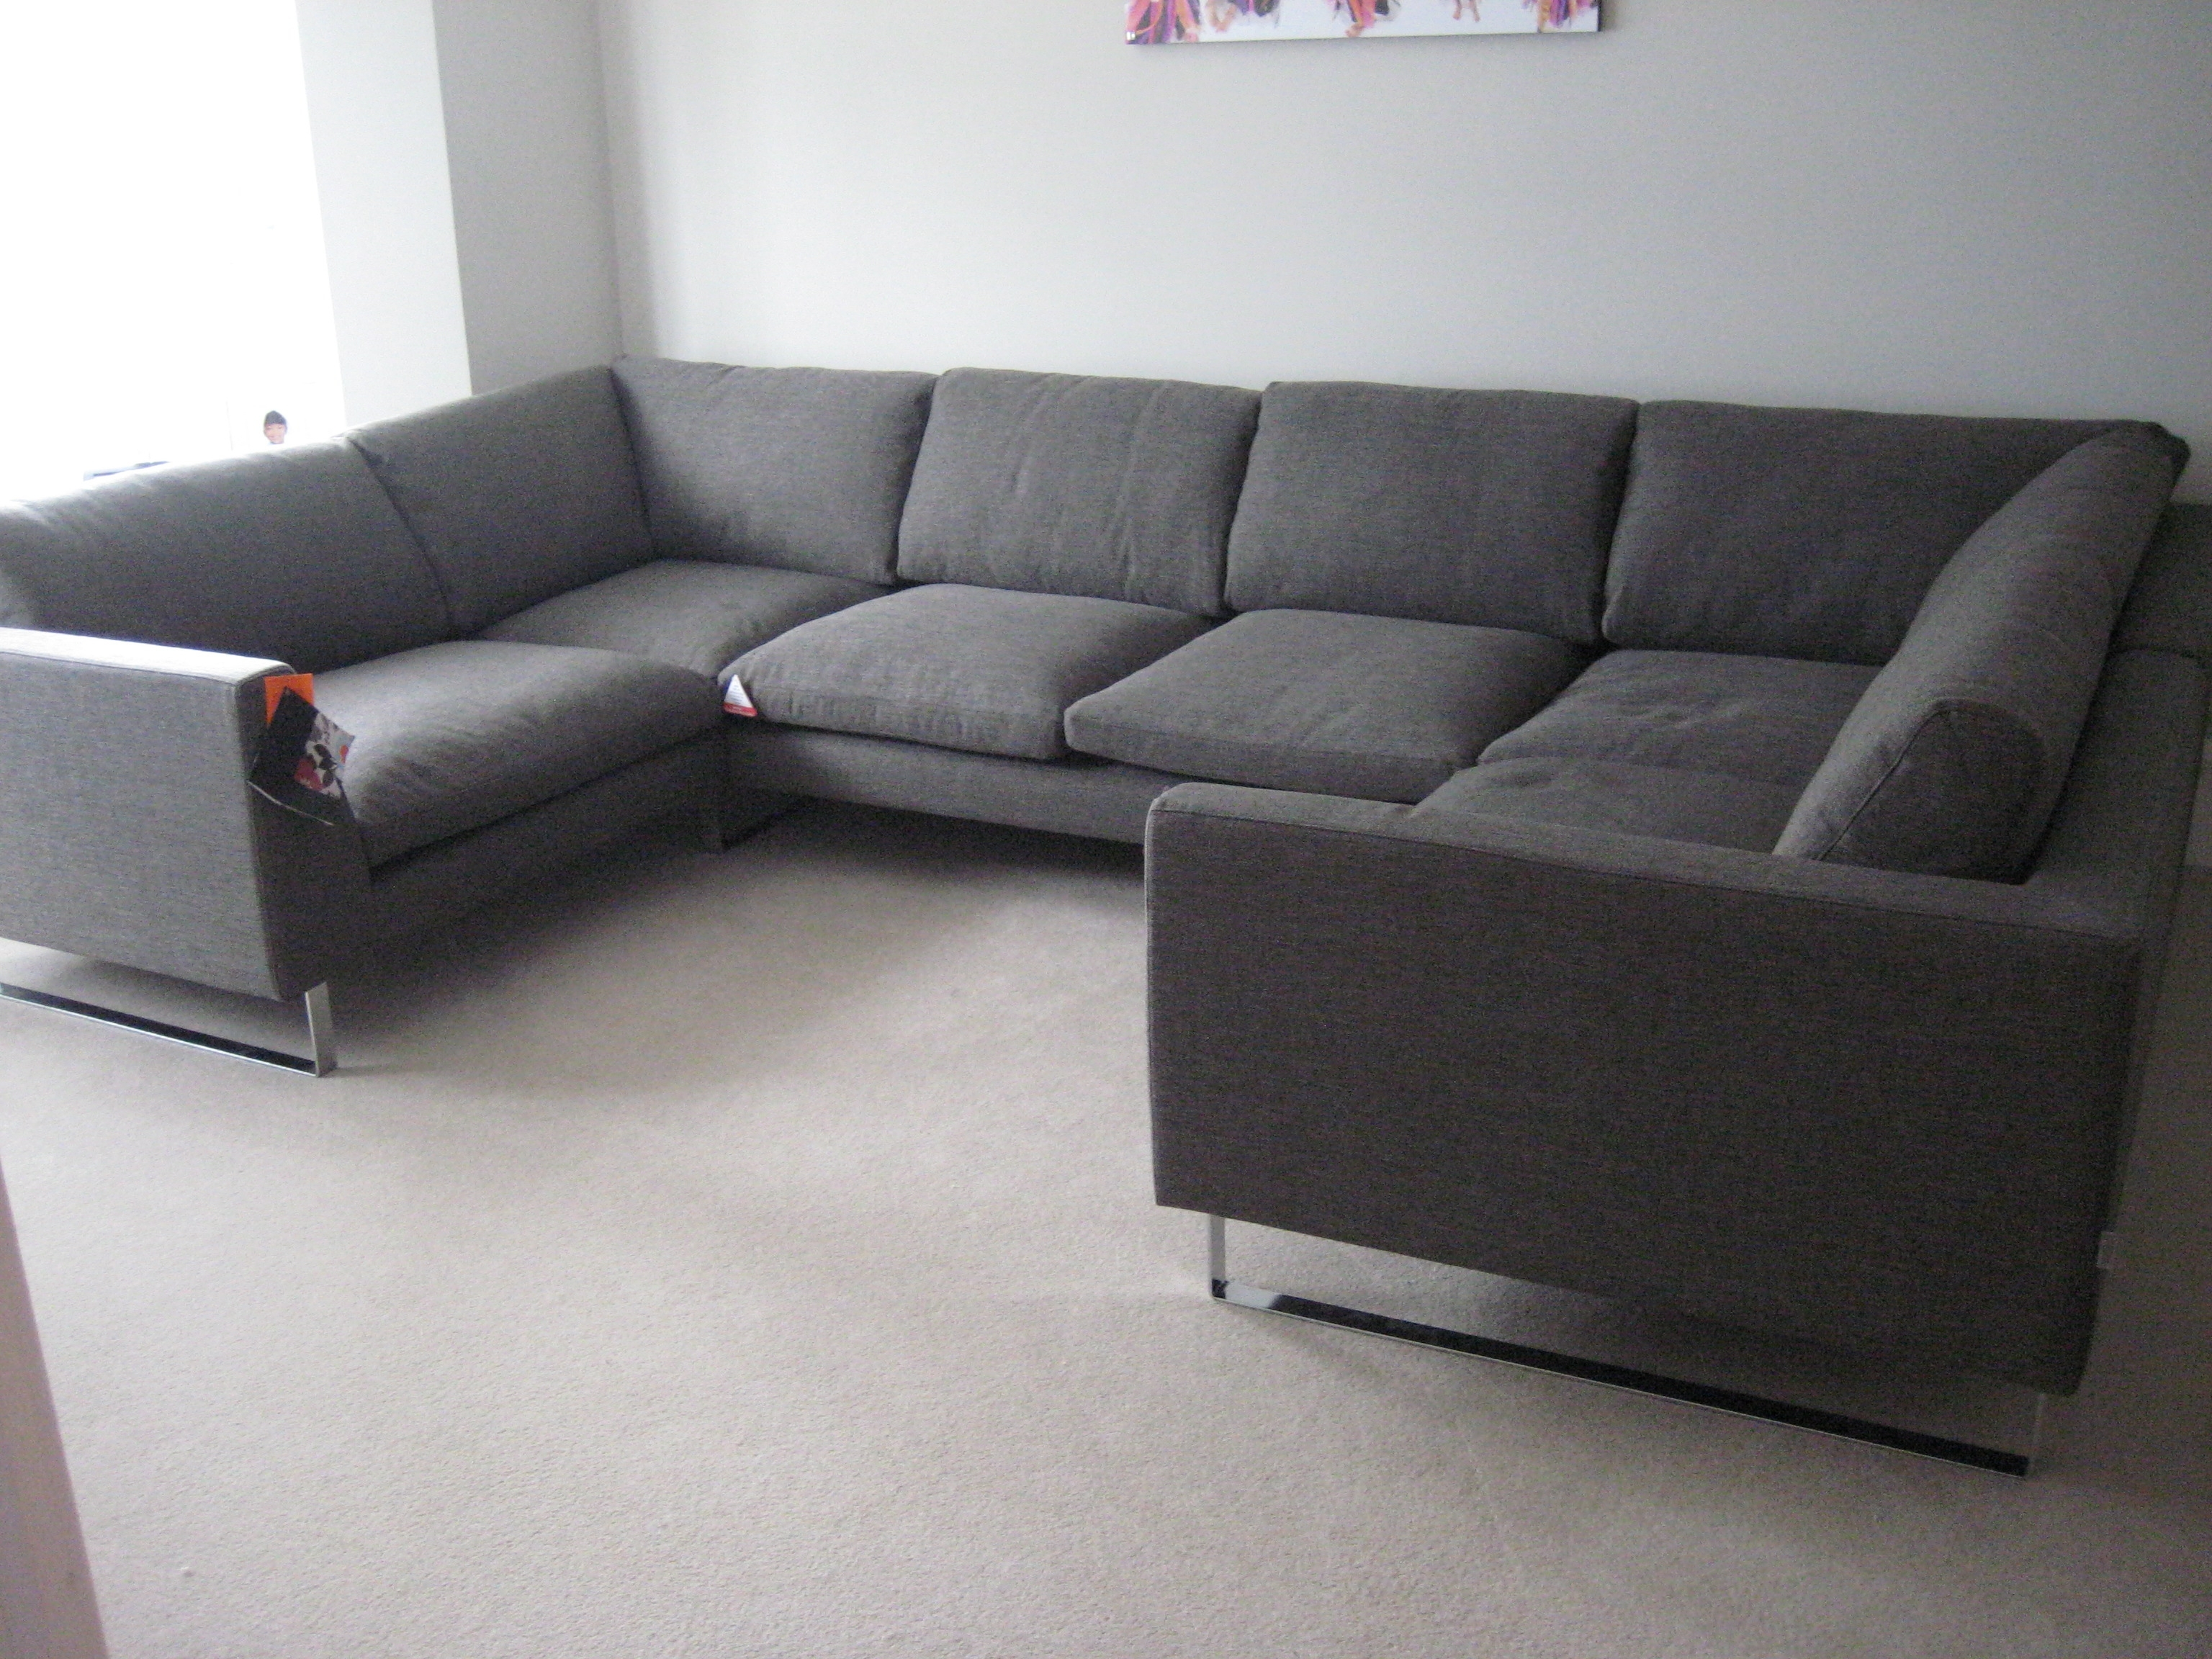 C Shaped Sofas Intended For Best And Newest C Shaped Sofas 86 With C Shaped Sofas – Fjellkjeden (View 4 of 20)